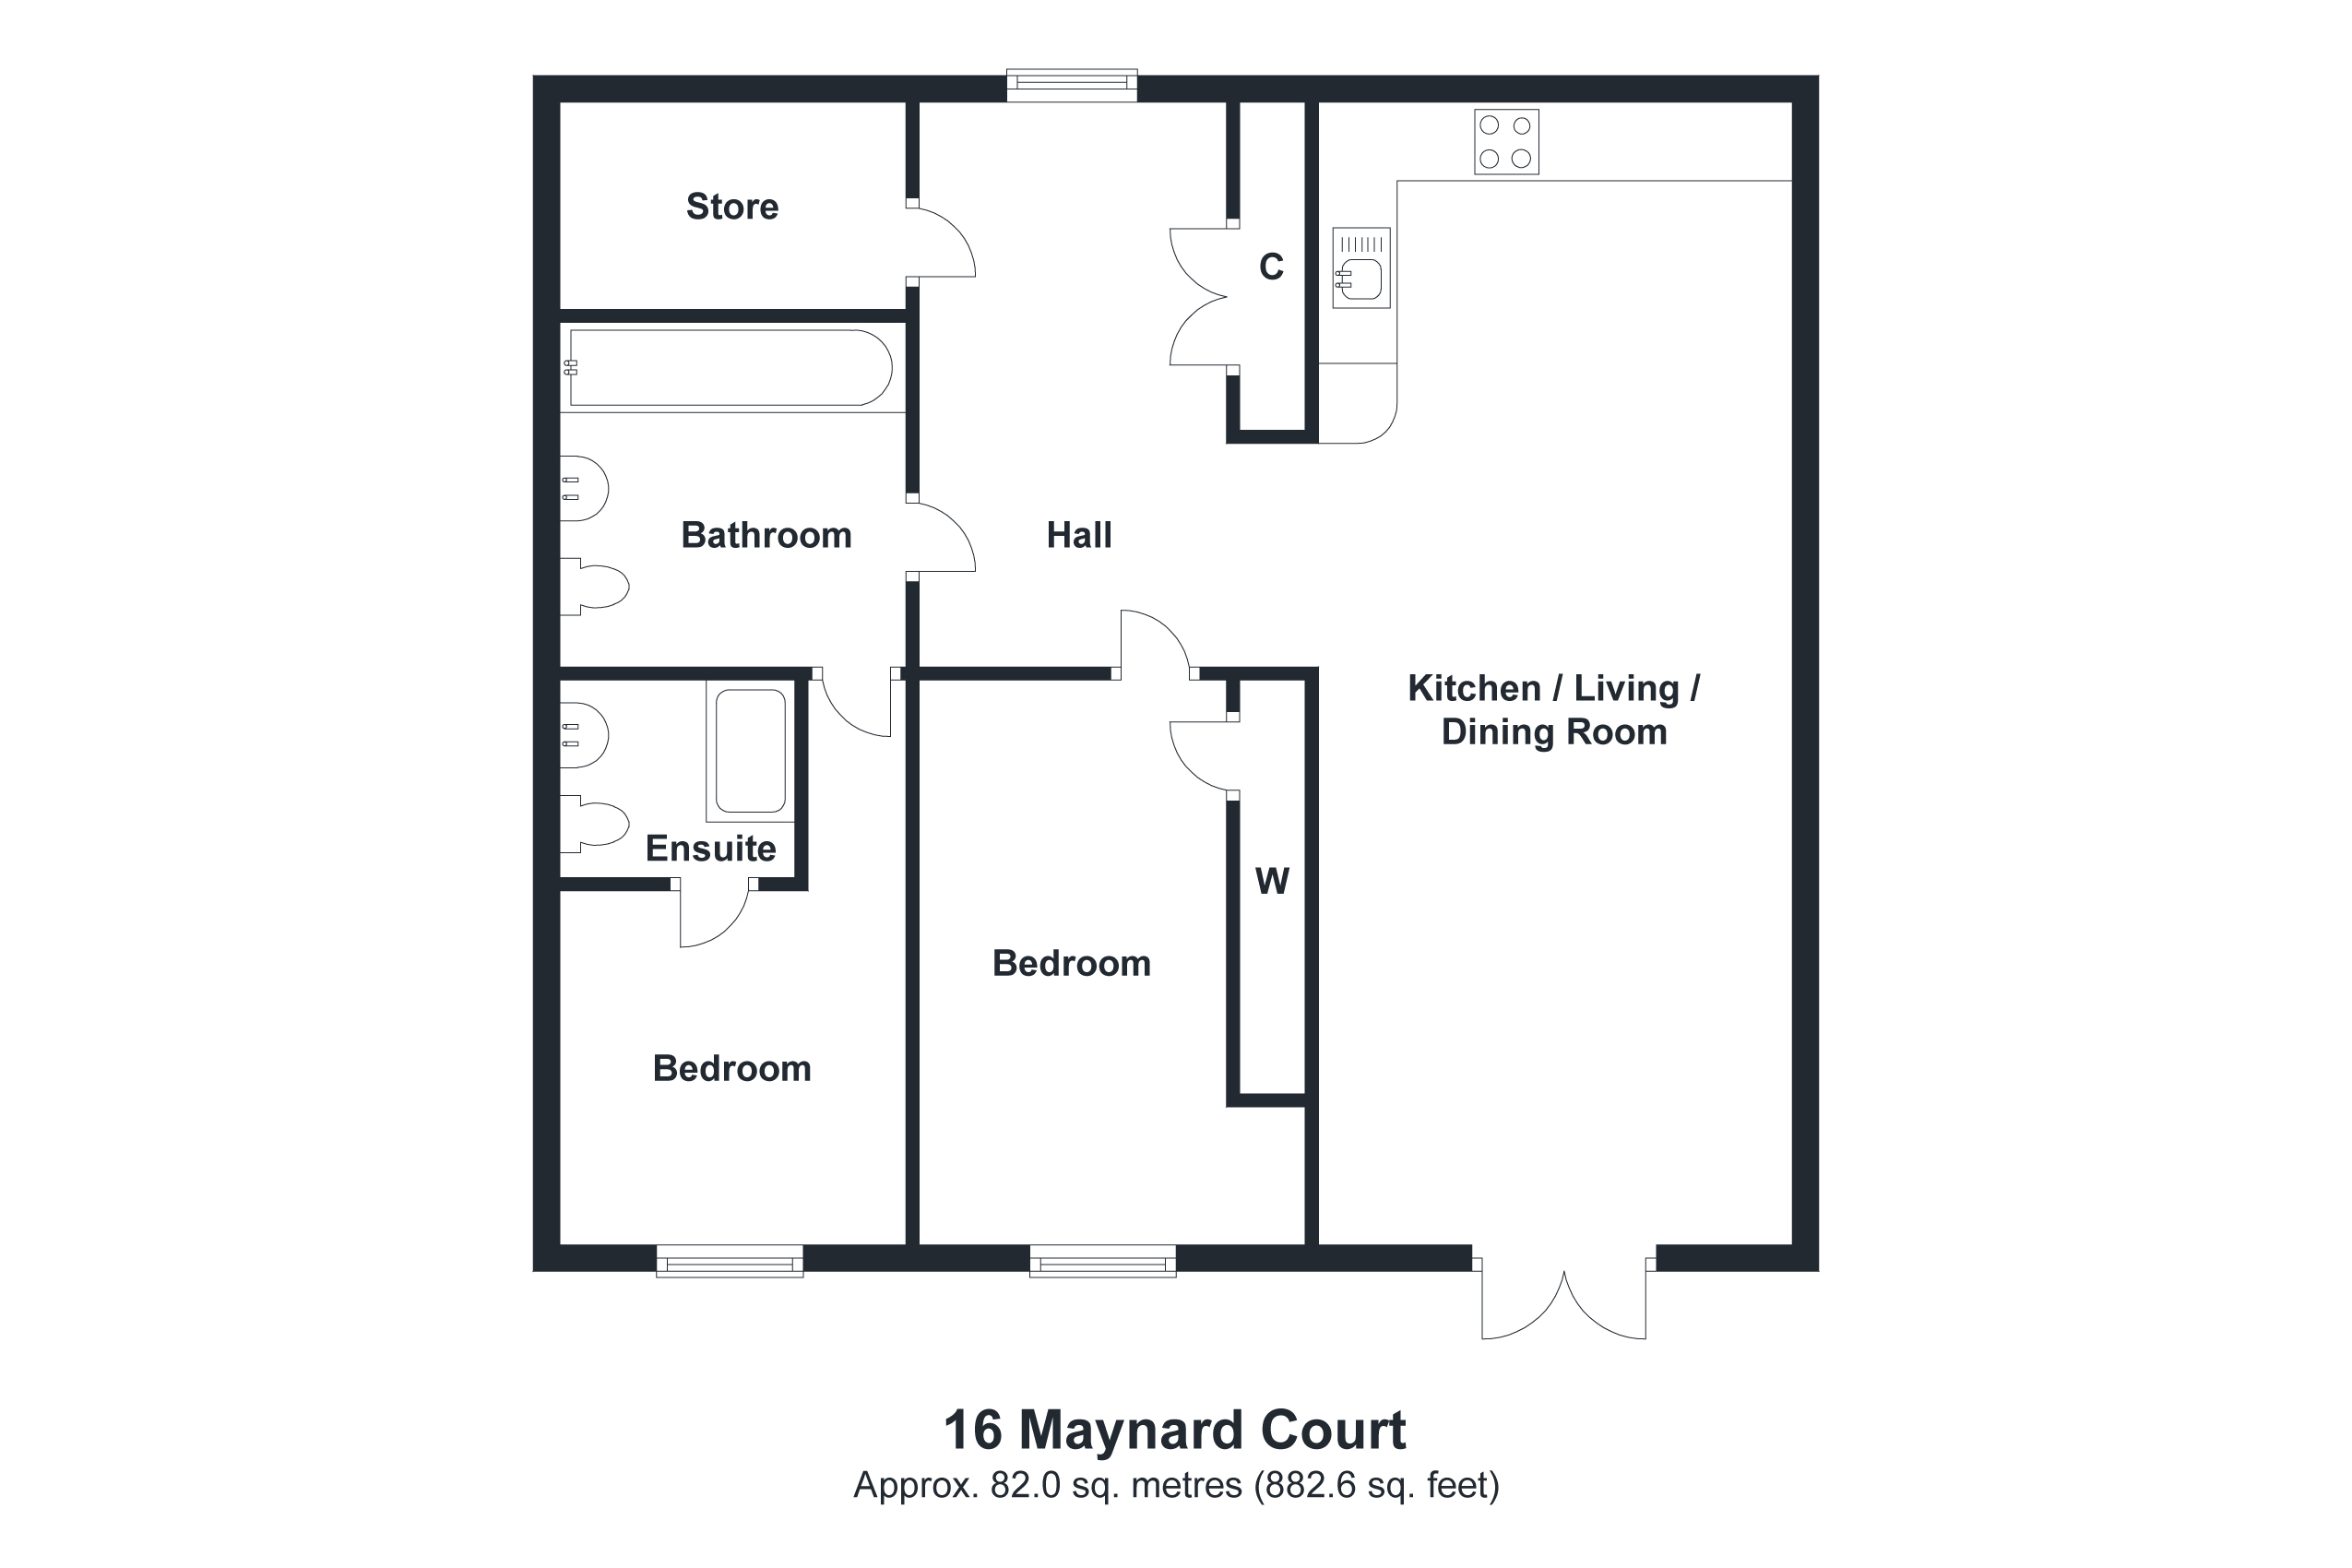 16 Maynard House Floorplan